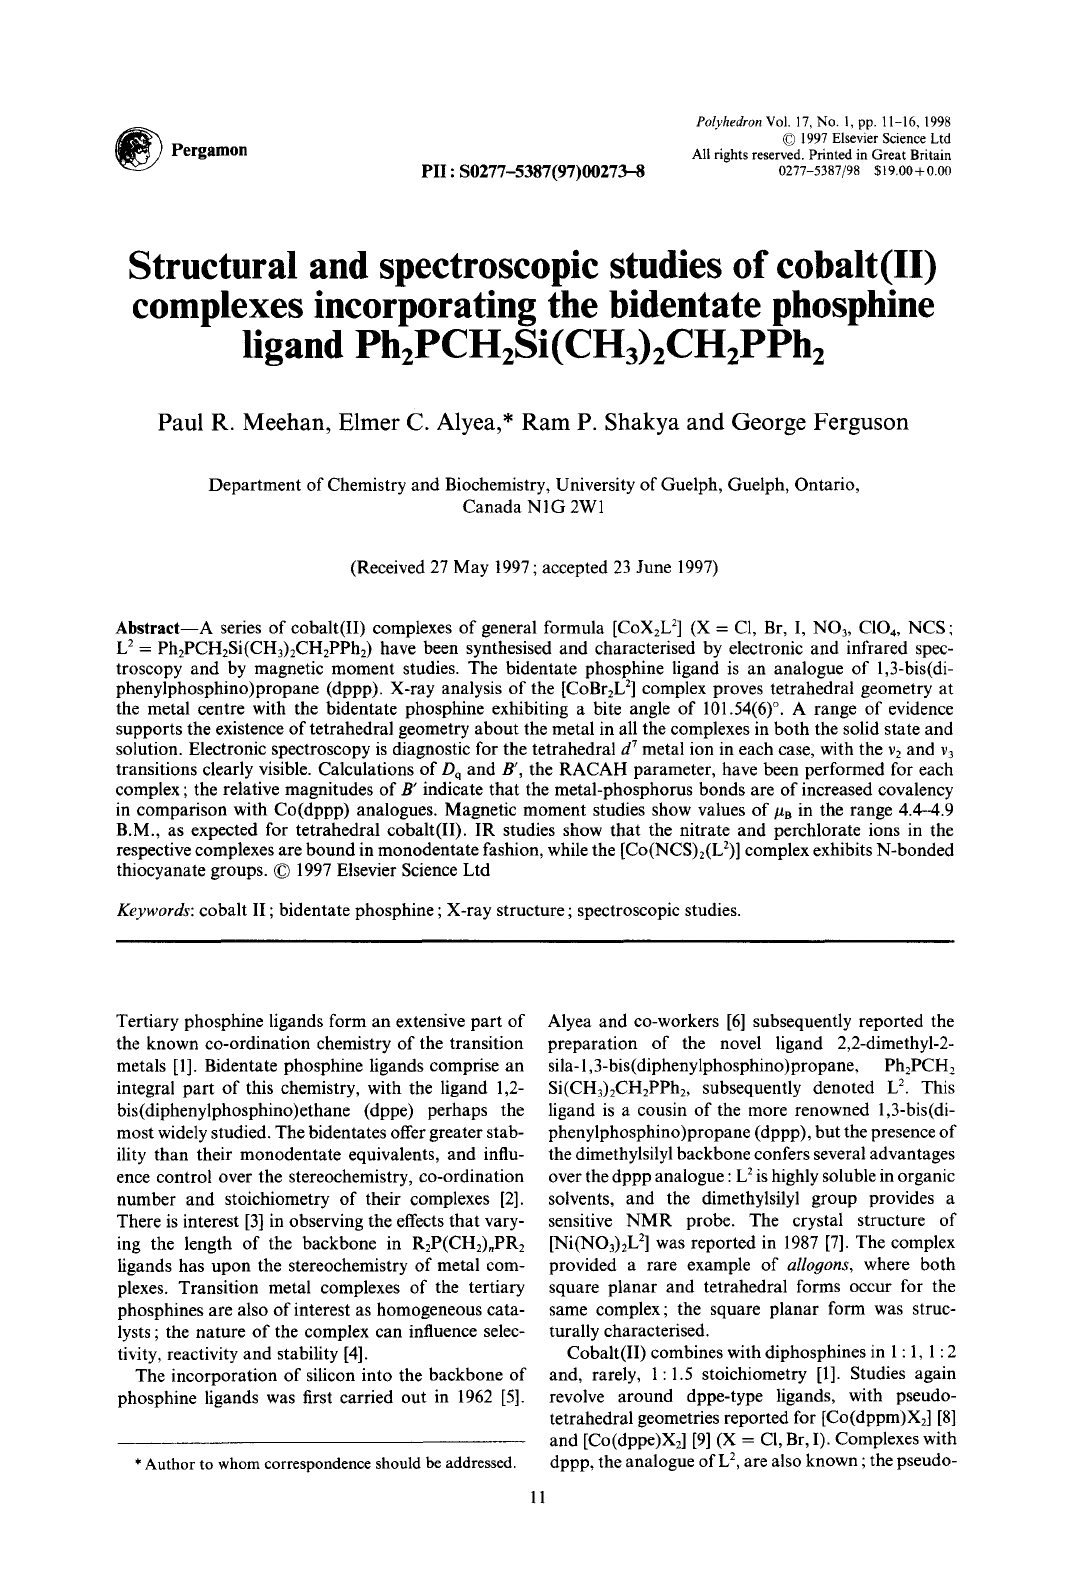 Structural And Spectroscopic Studies Of Cobalt Ii Complexes Incorporating The Bidentate Phosphine Ligand Ph2pch2si Ch3 2ch2pph2 Pdf Document